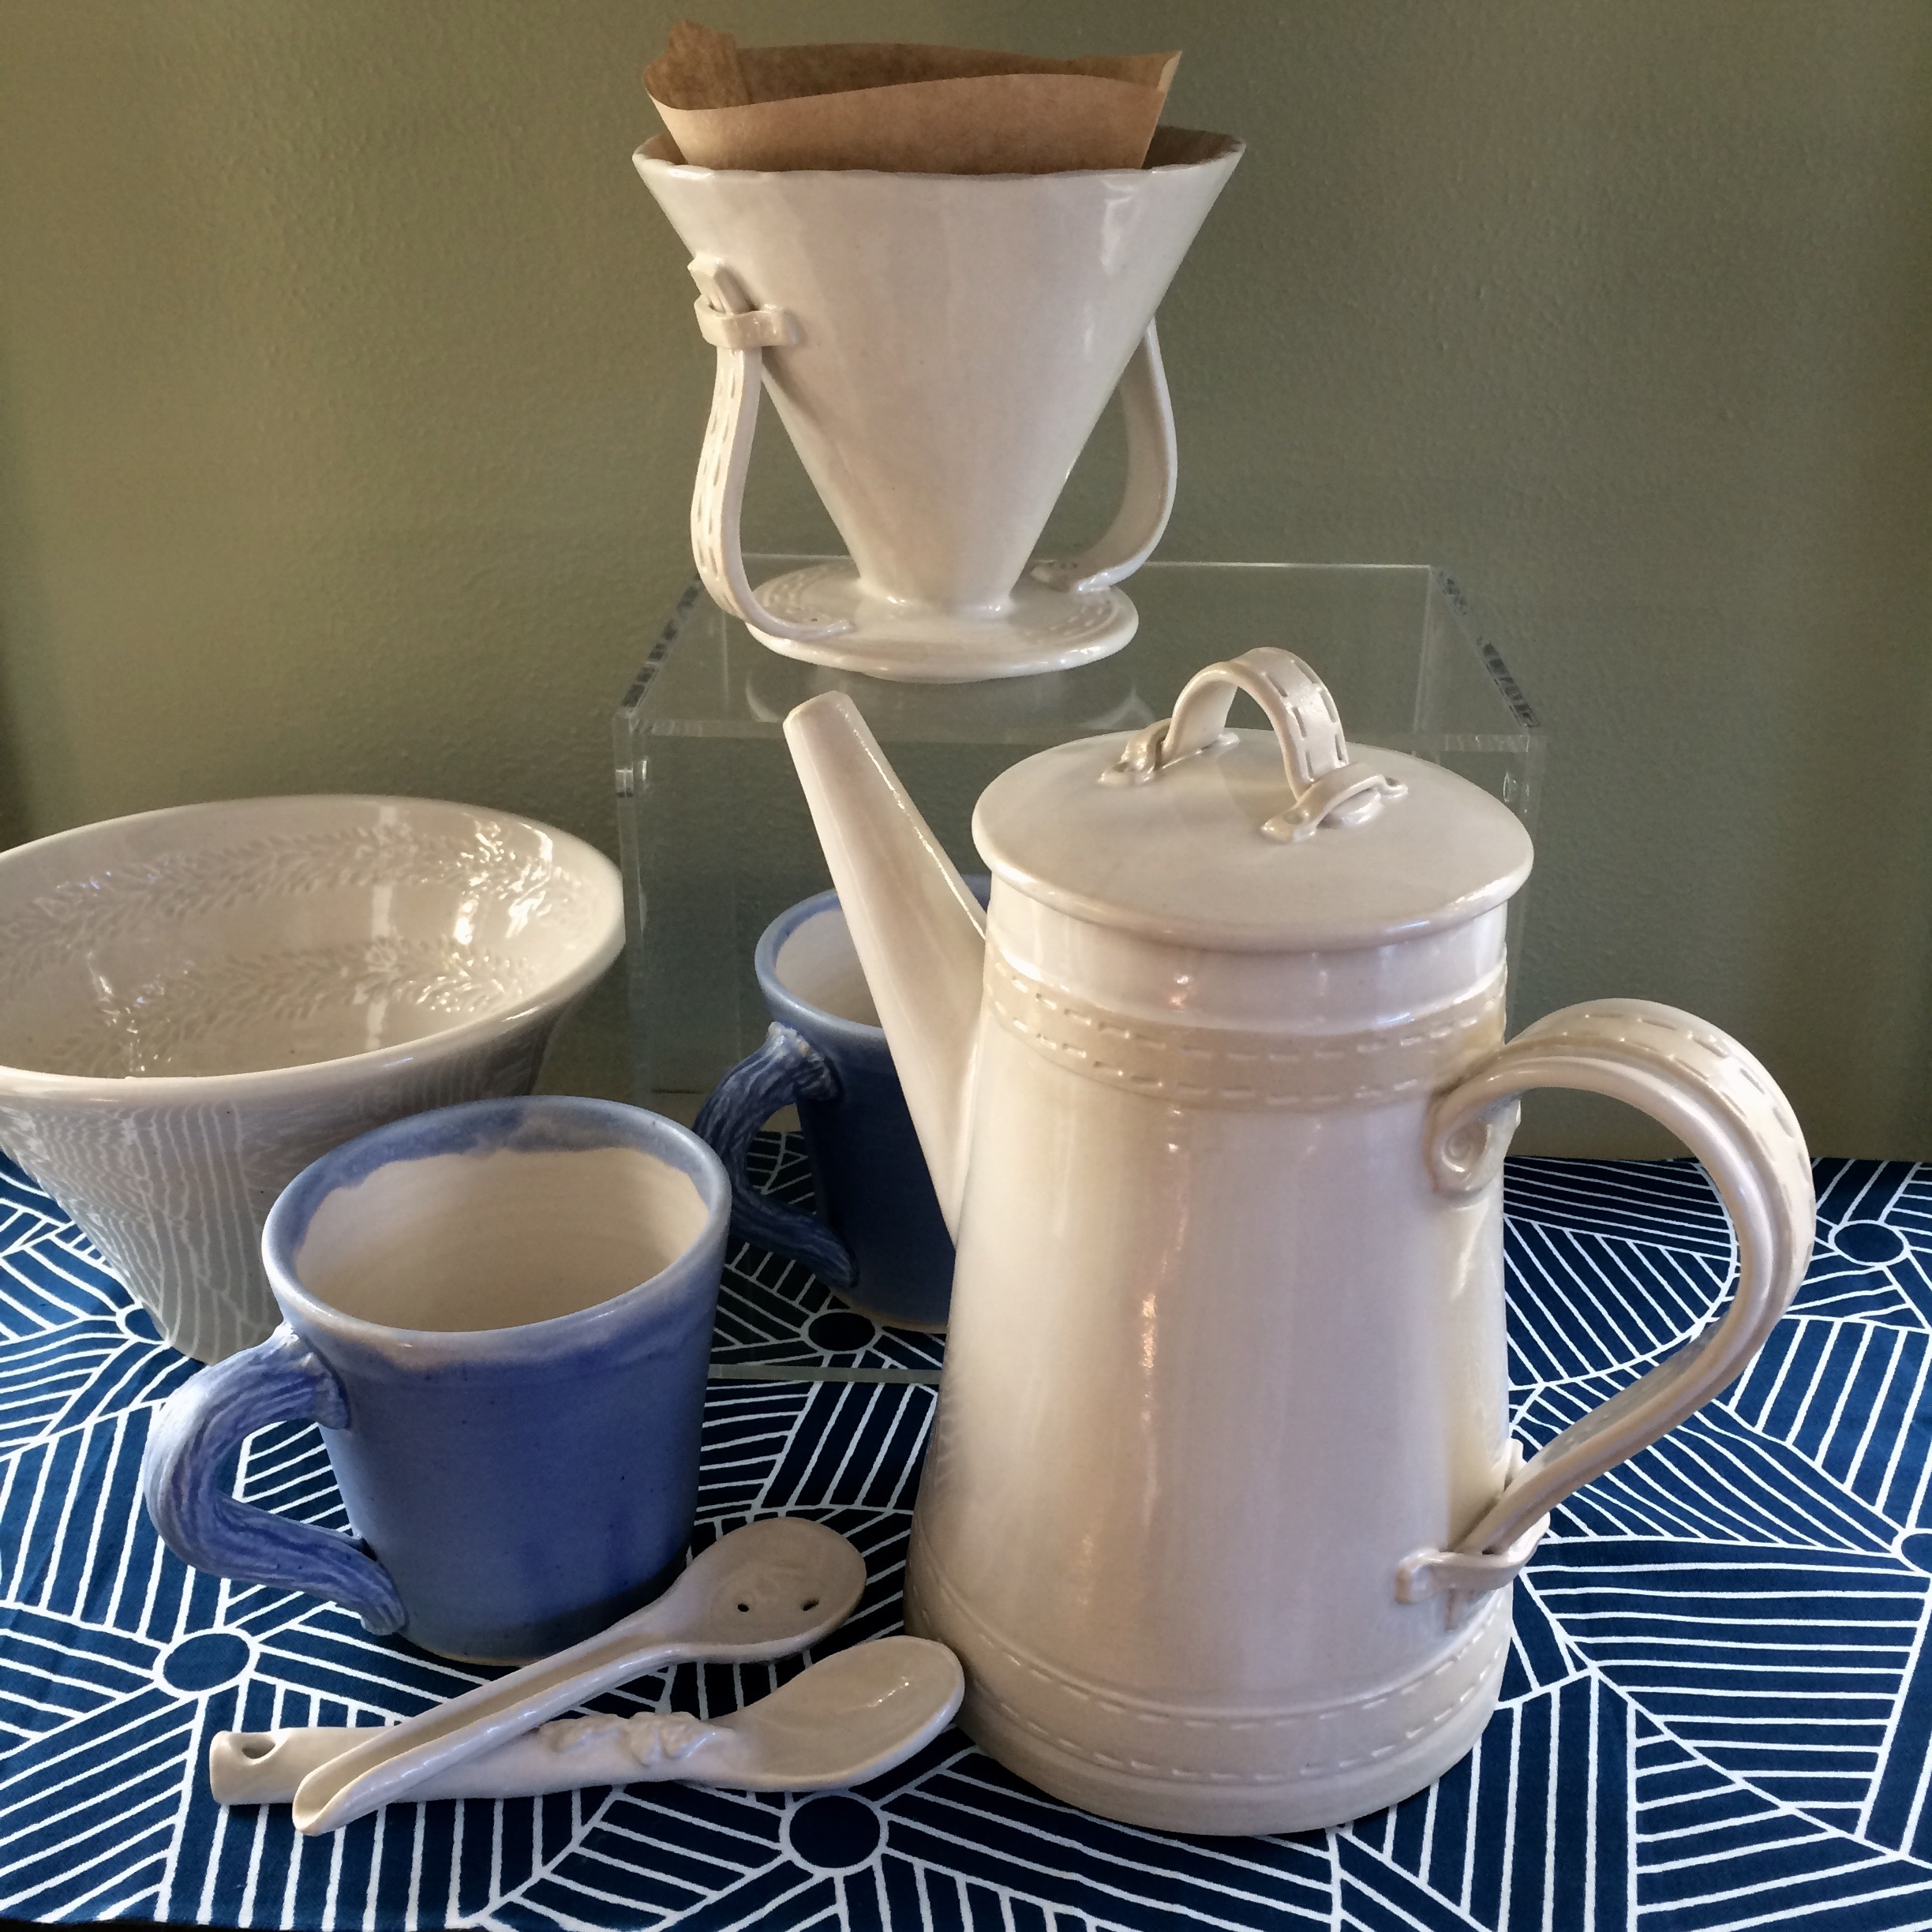 pour-over coffee pot - Hand built and wheel thrown mid-range stoneware